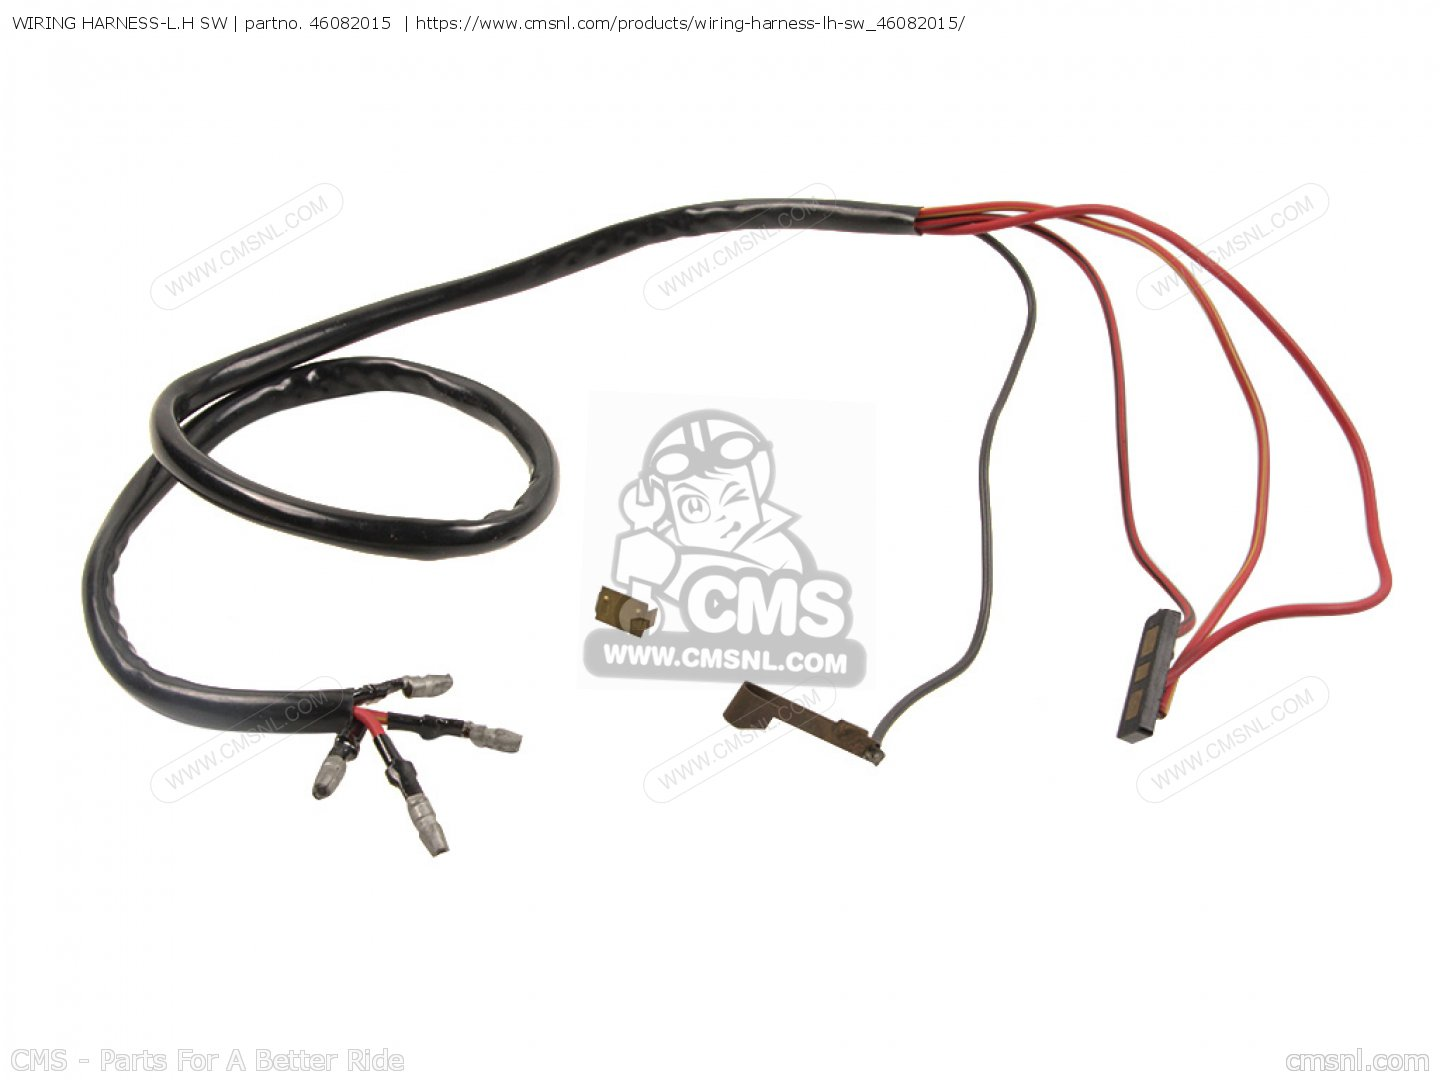 Wiring Harness L H Sw For G3tr Bushmaster Usa